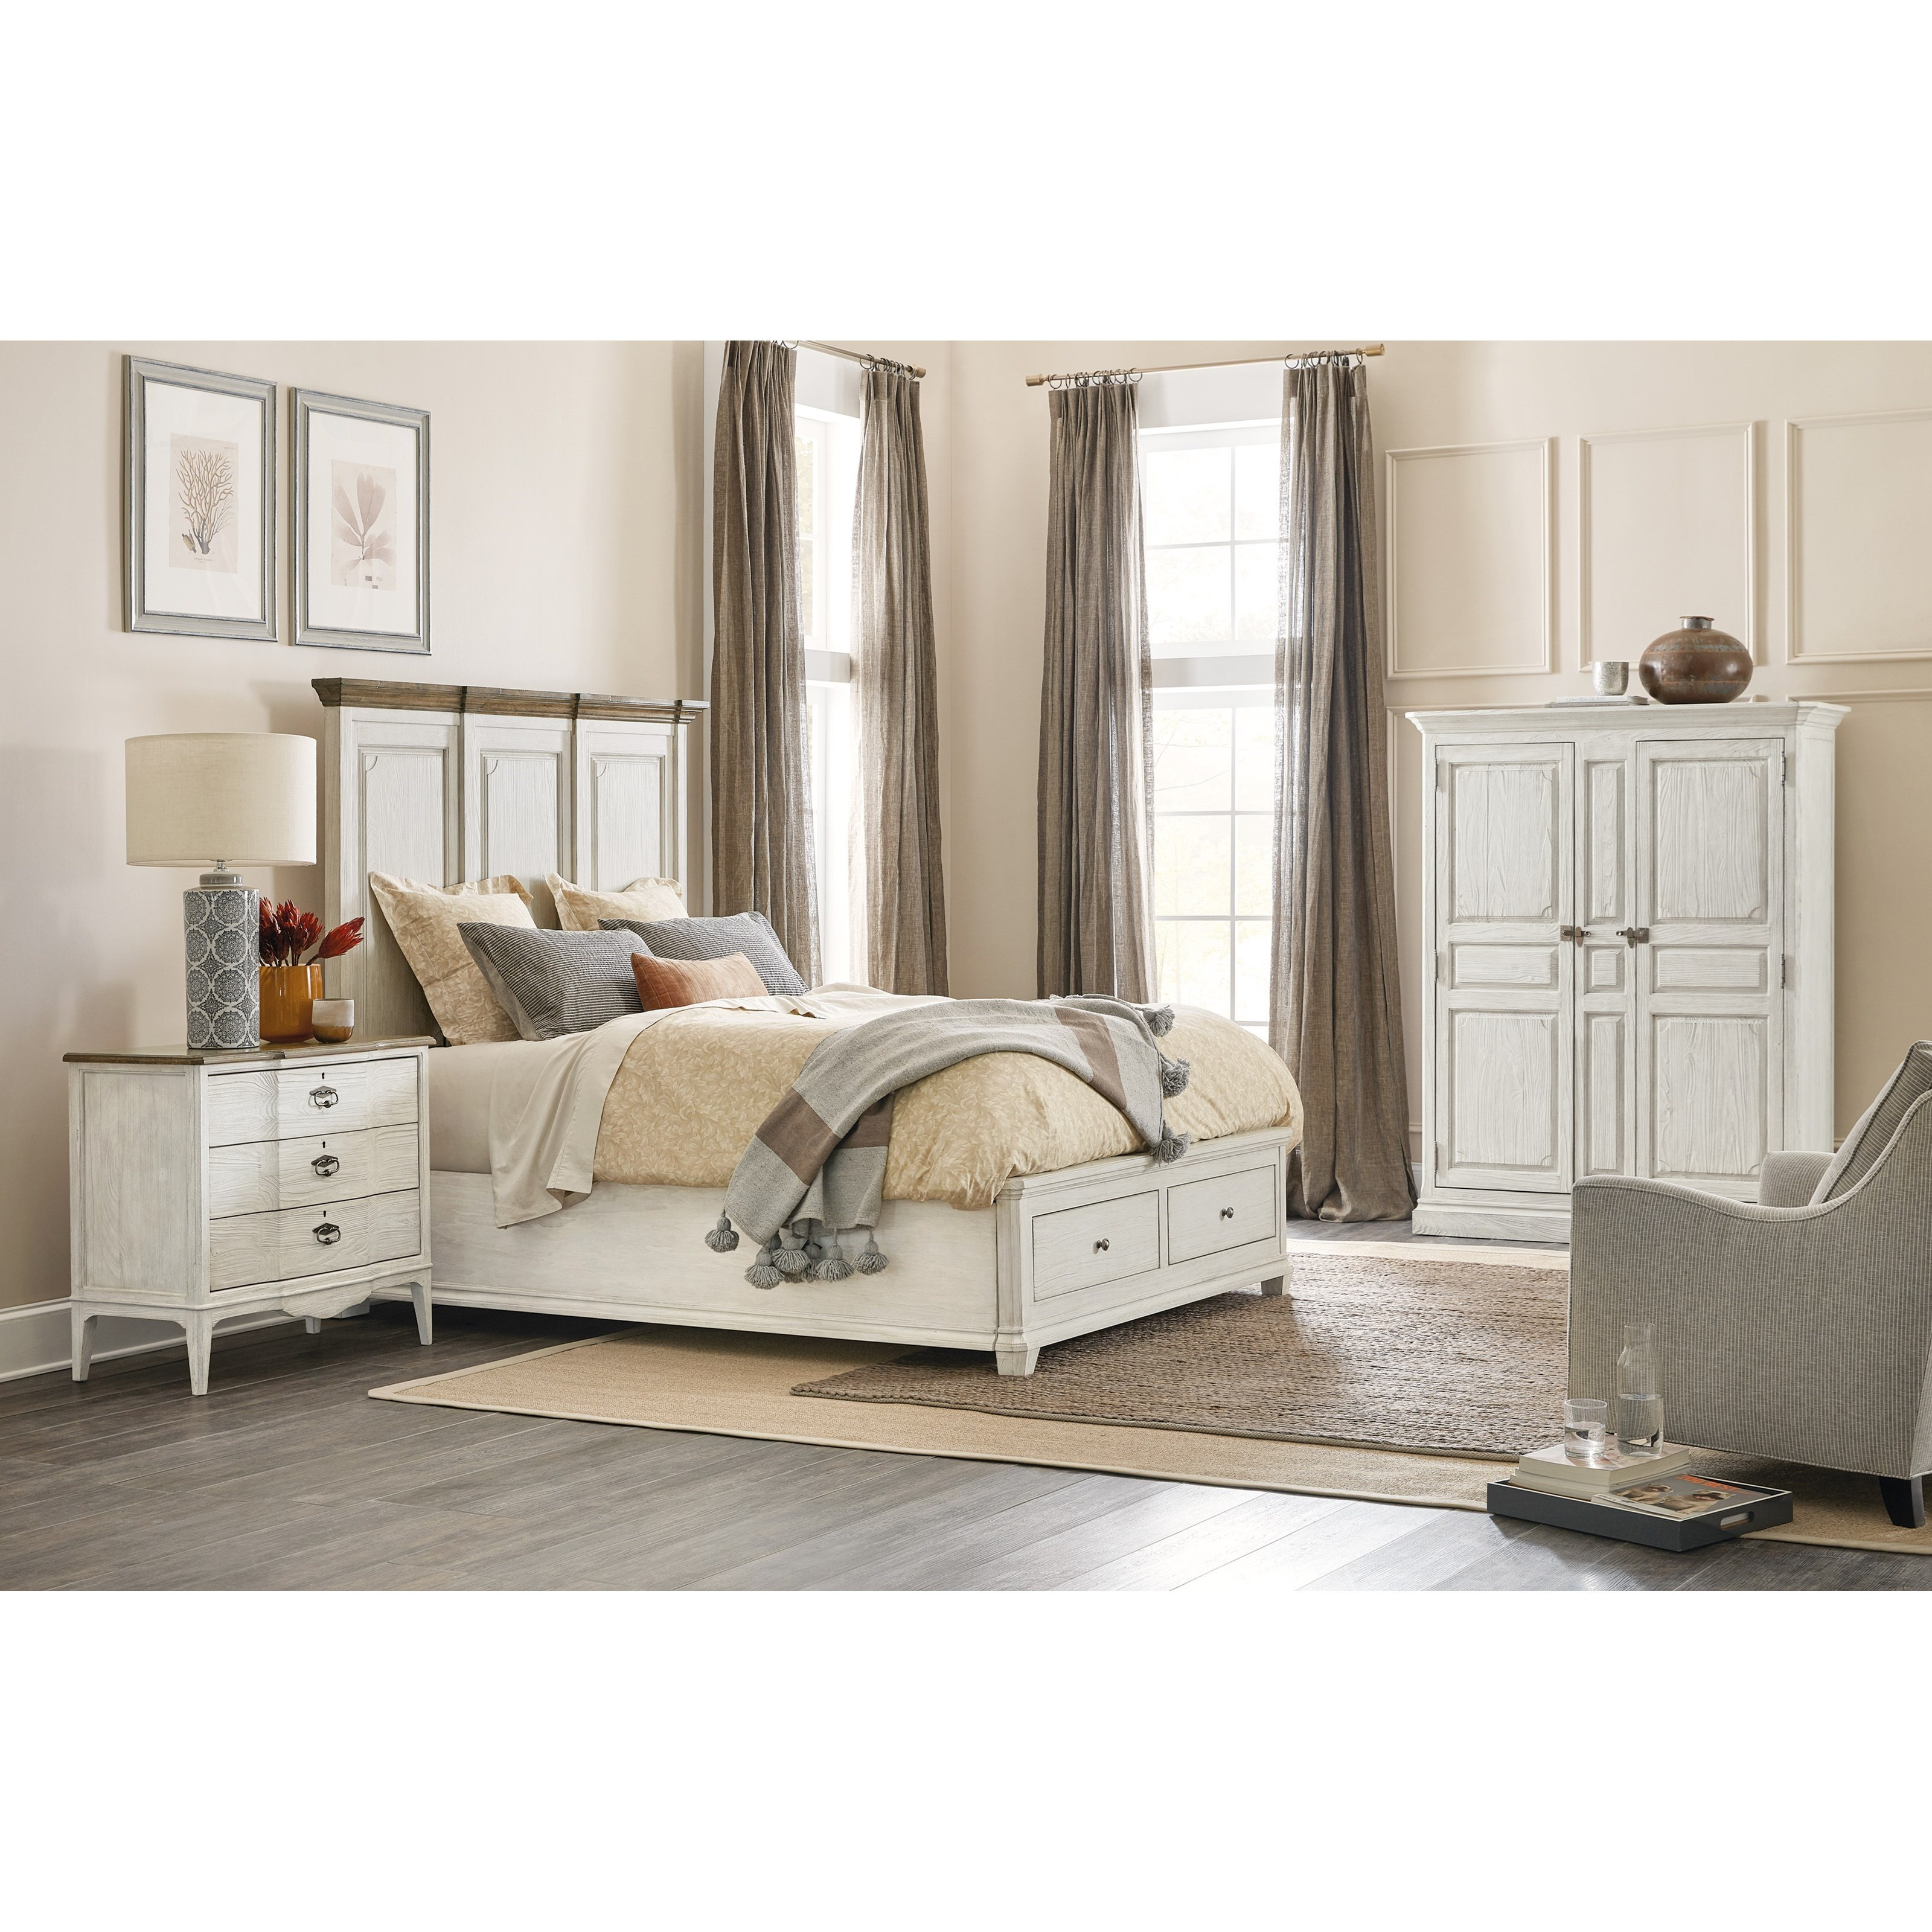 Montebello Queen Bedroom Group by Hooker Furniture at Story & Lee Furniture